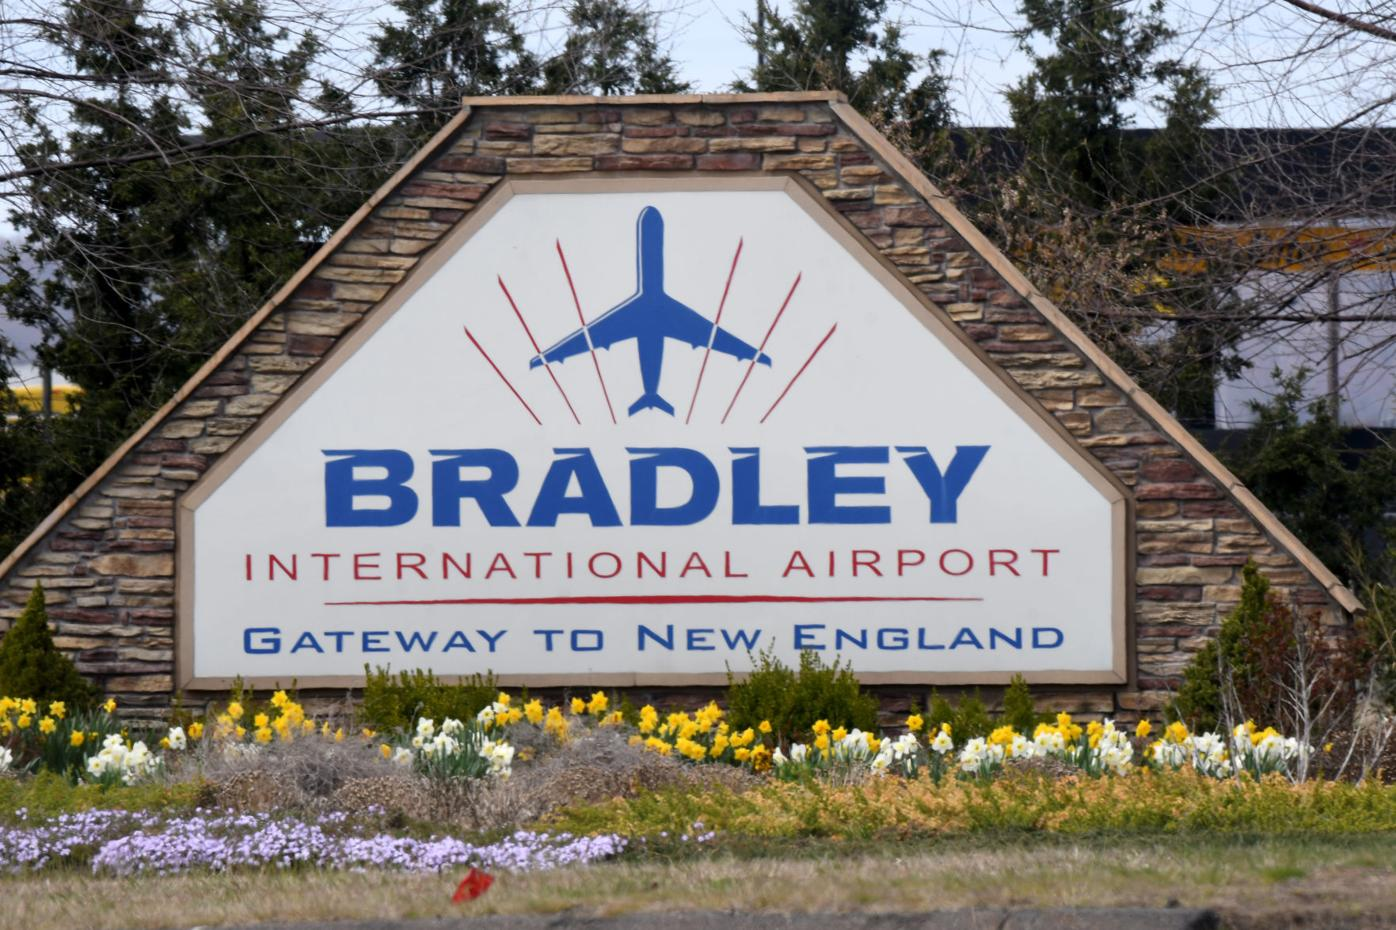 file Bradley Airport sign